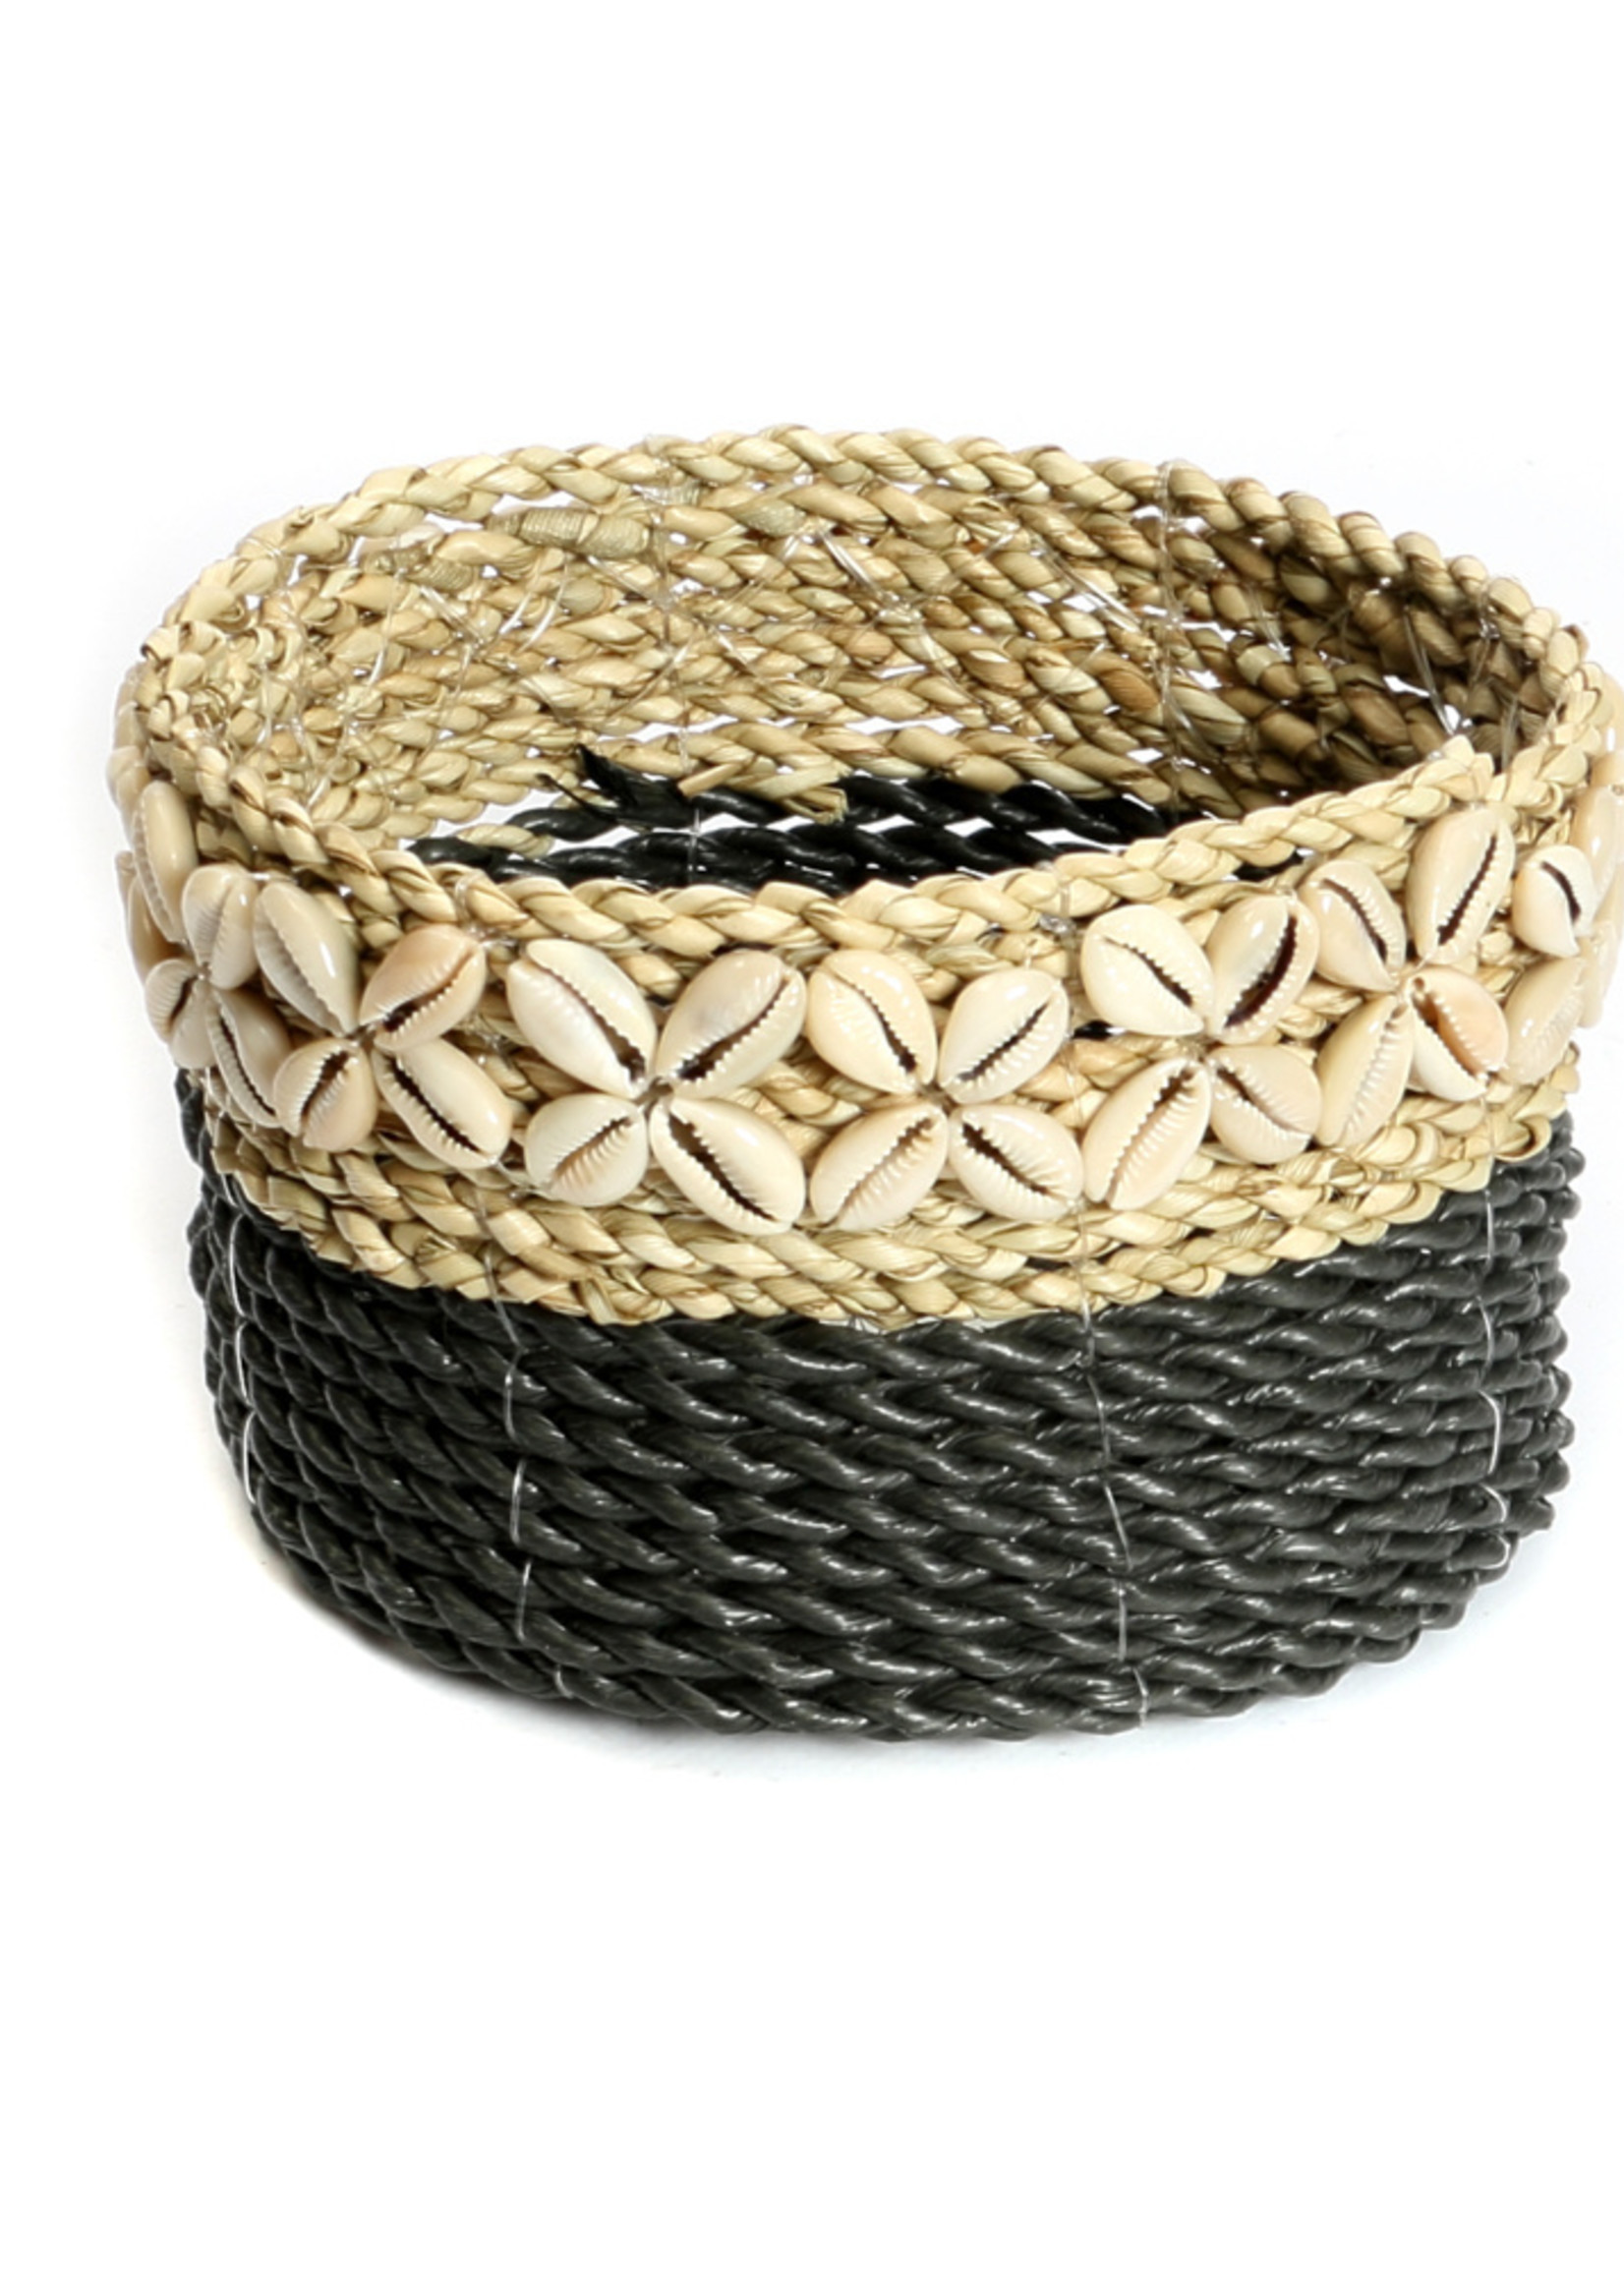 The White Sunday Baskets - Black Natural - S